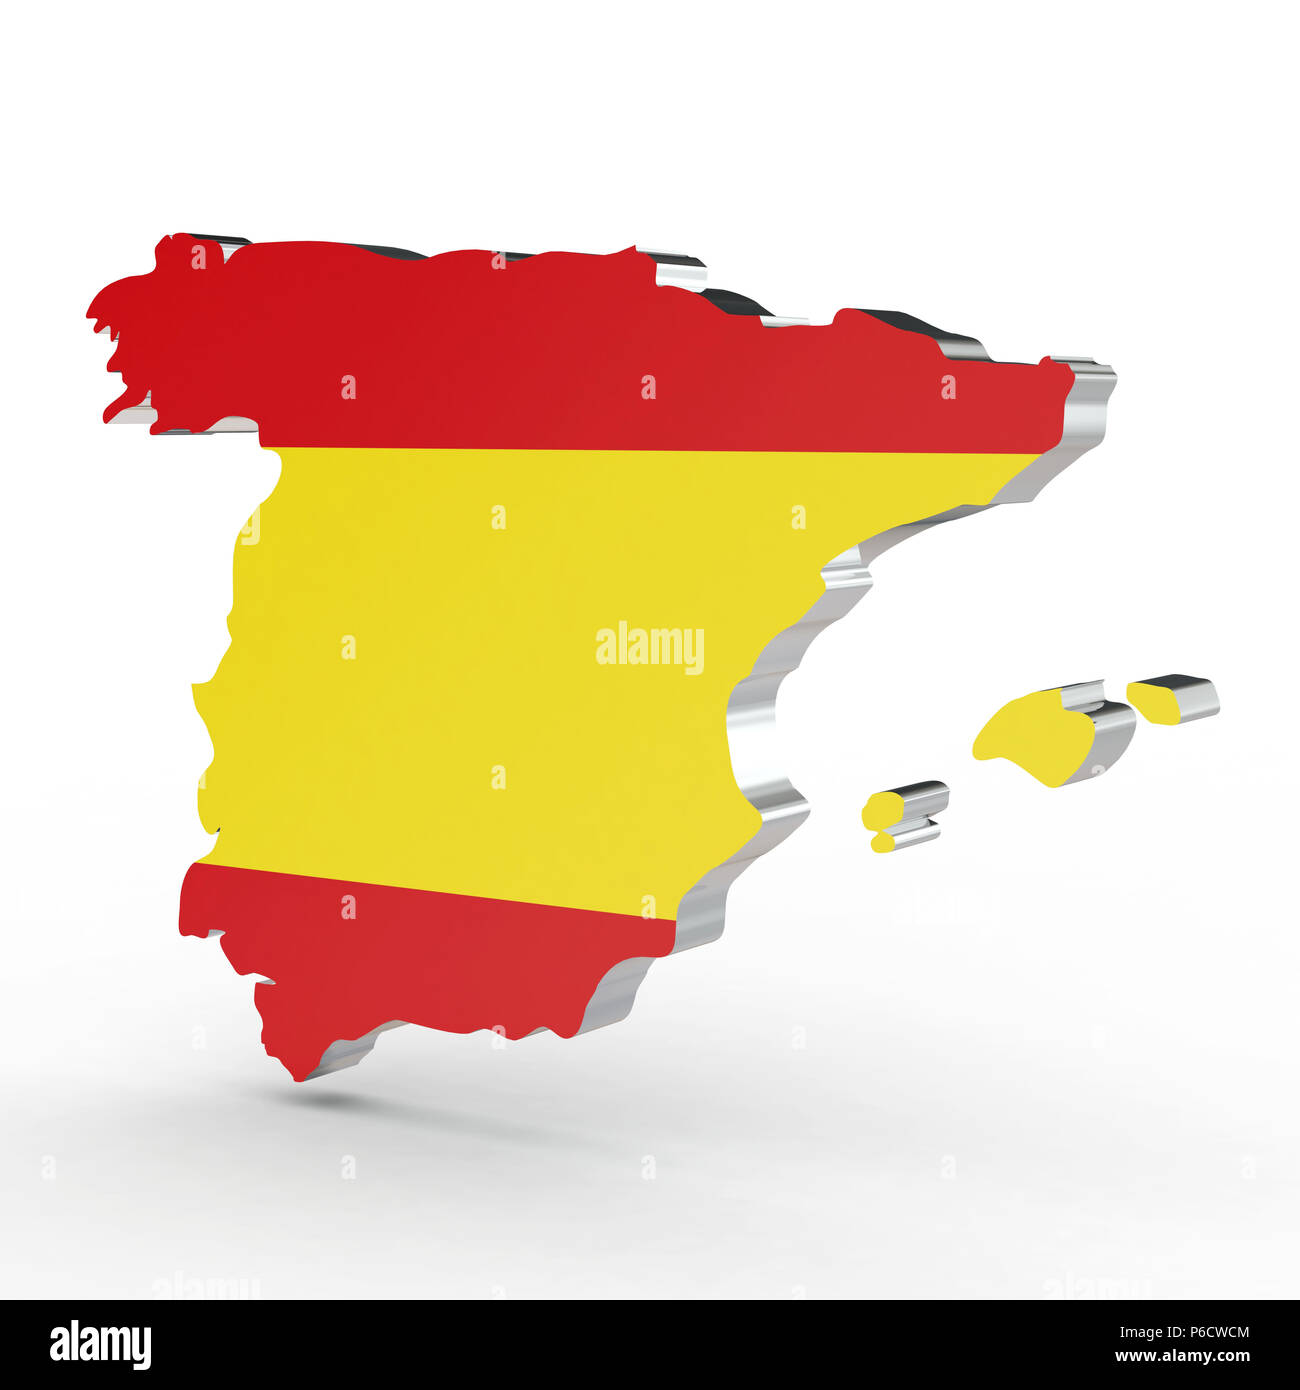 3d Map Of Spain.Europe 3d Map Of Spain Isolated On White Background Stock Photo